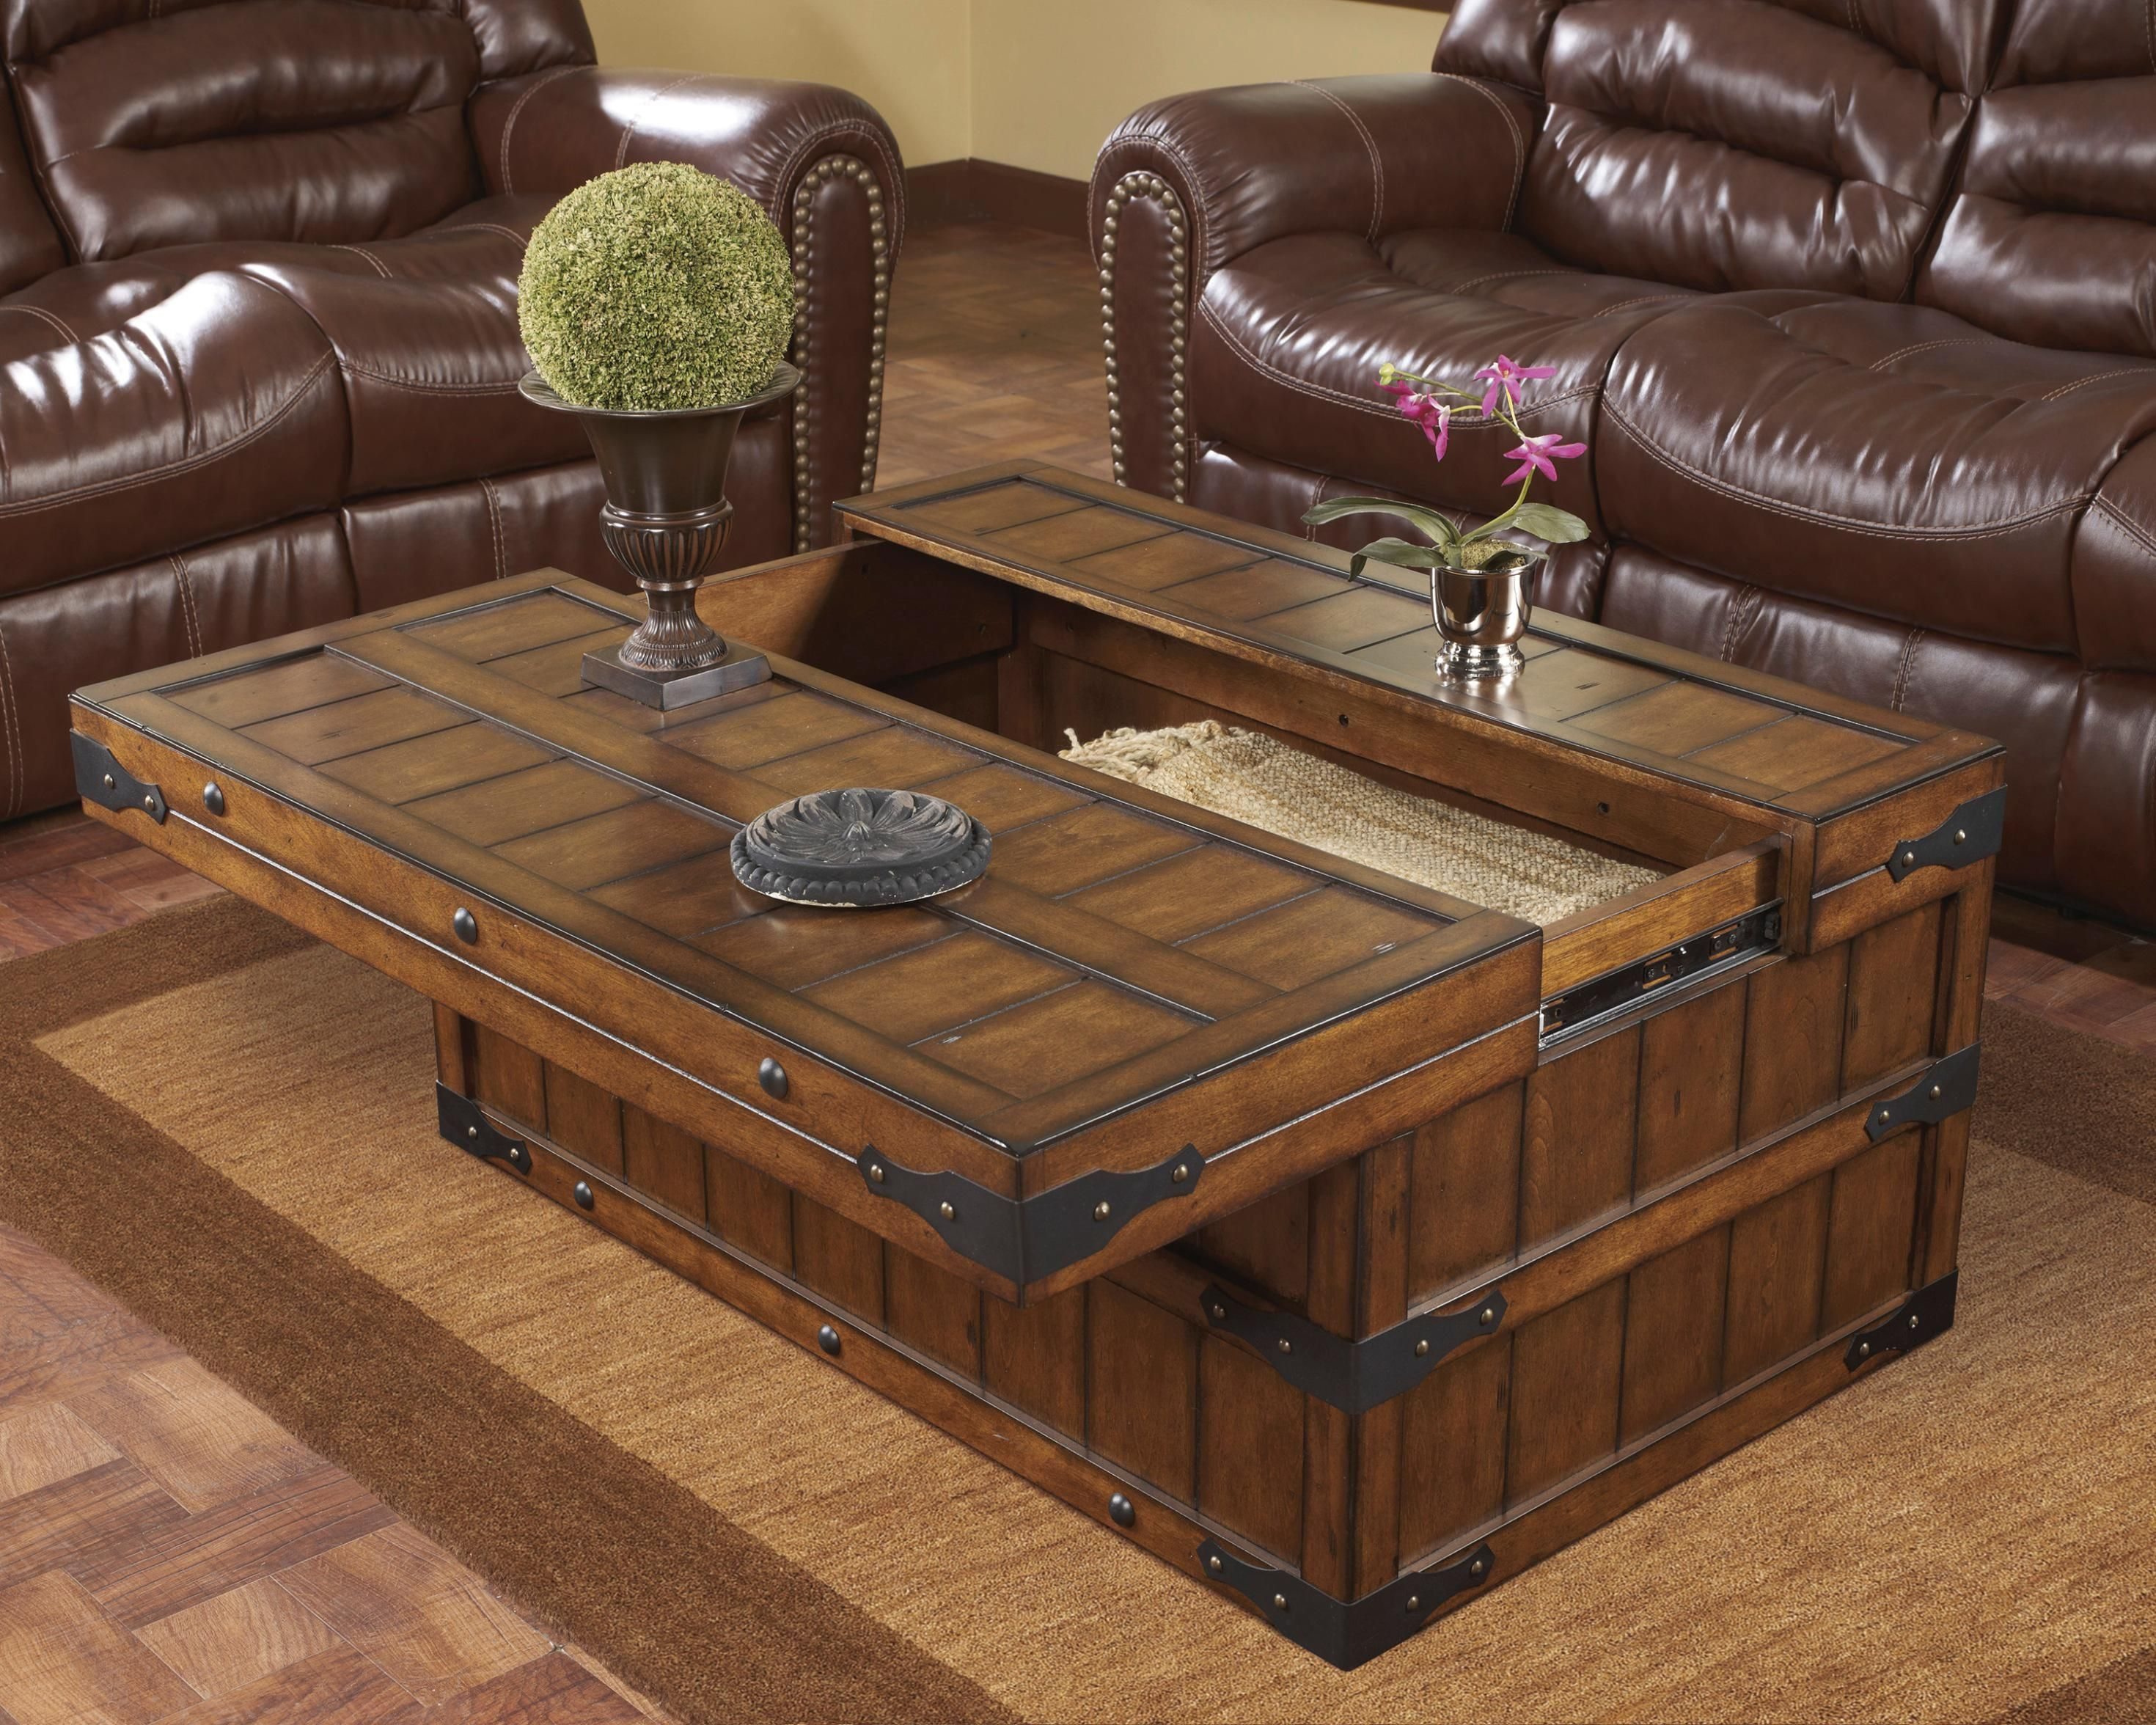 Remarkable Trunk Coffee Table For Design Home – Trunk Coffee